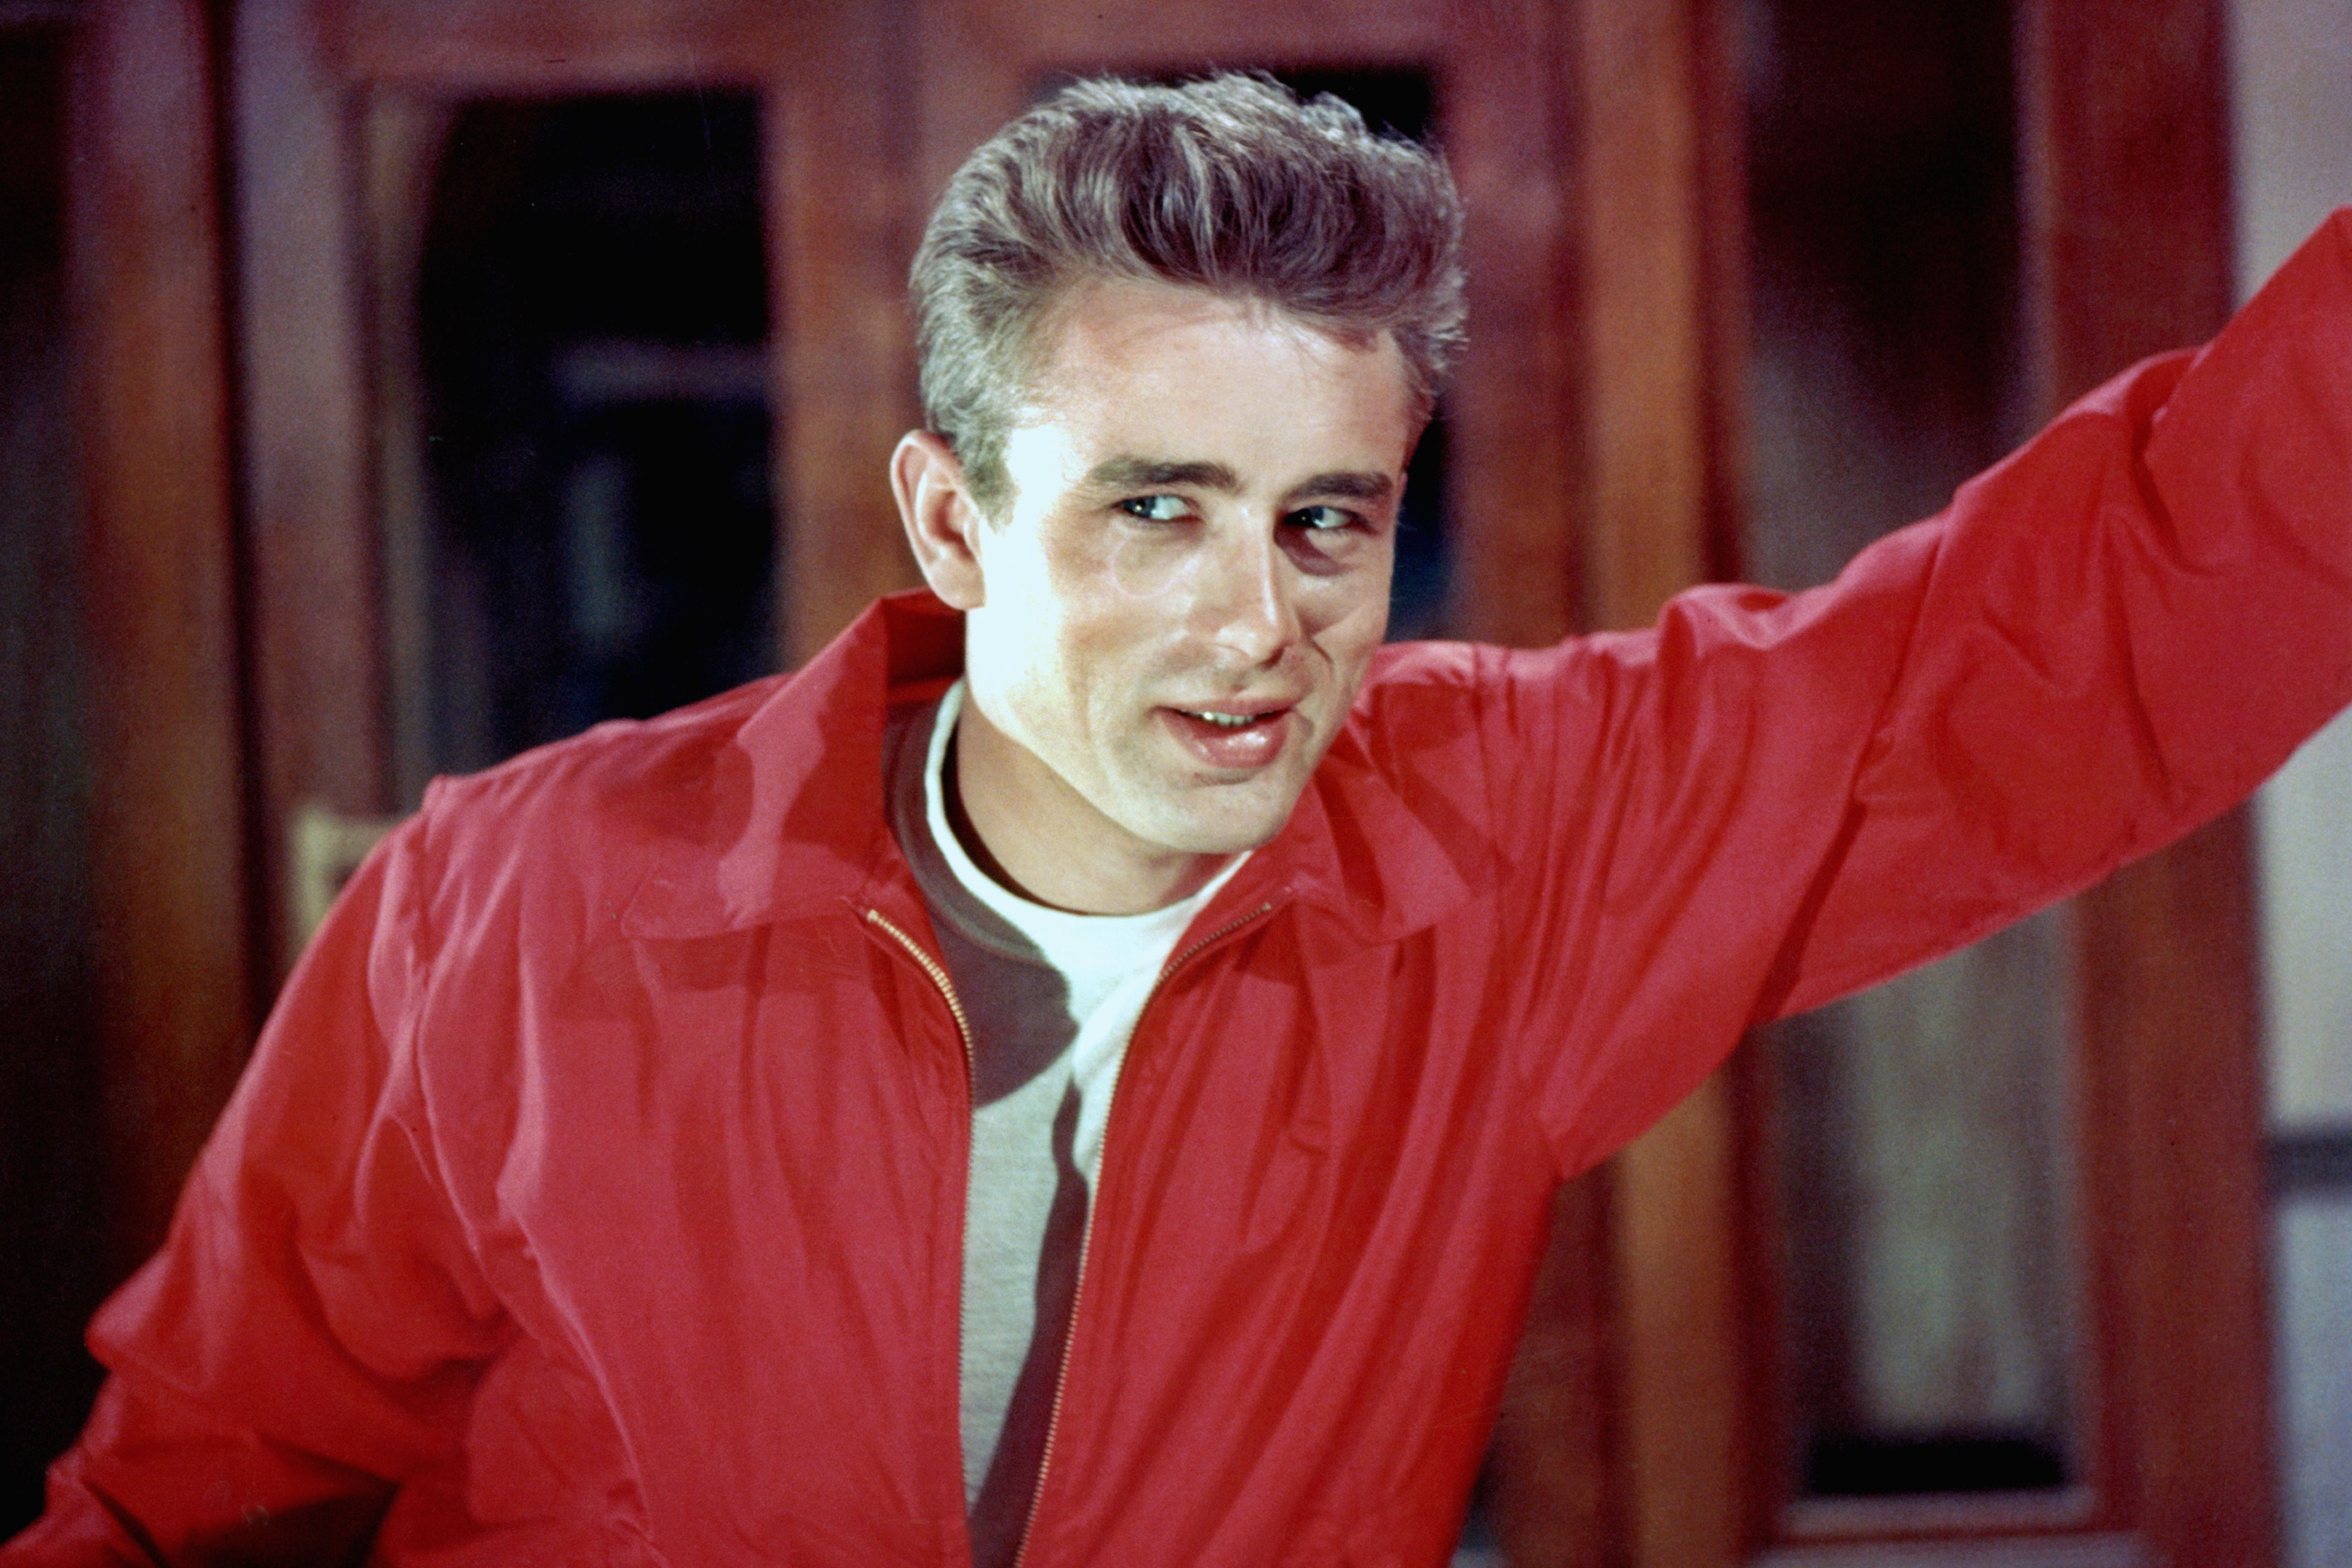 Watch Now Hollywood icon James Dean only starred in three films during his short life. Rebel Without A Cause , directed by Nicholas Ray, is the most memorable, and one of the earliest cinematic depictions of teen angst.